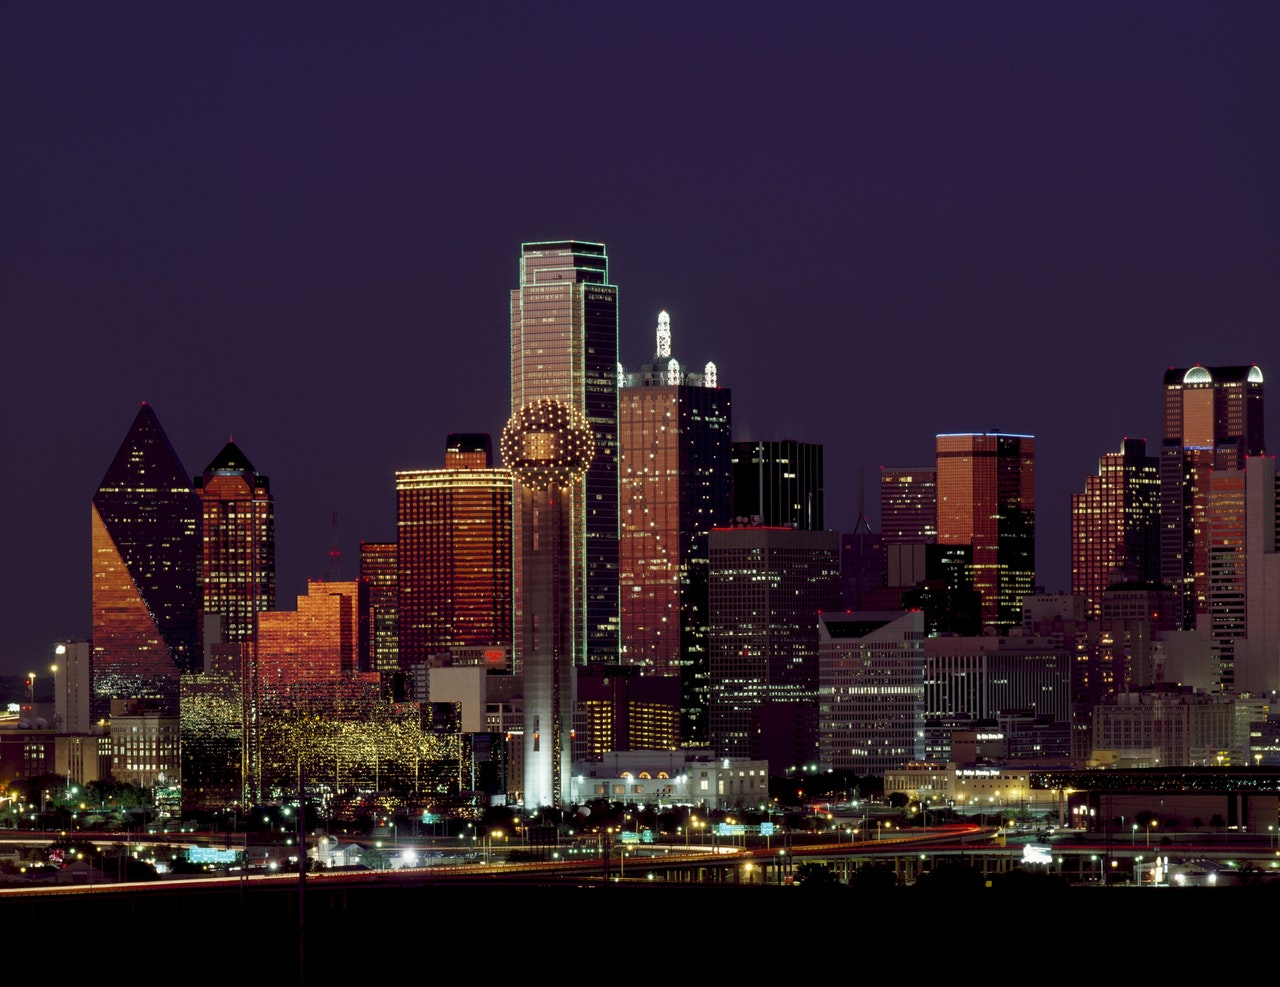 The Dallas skyline of high-rise buildings at night